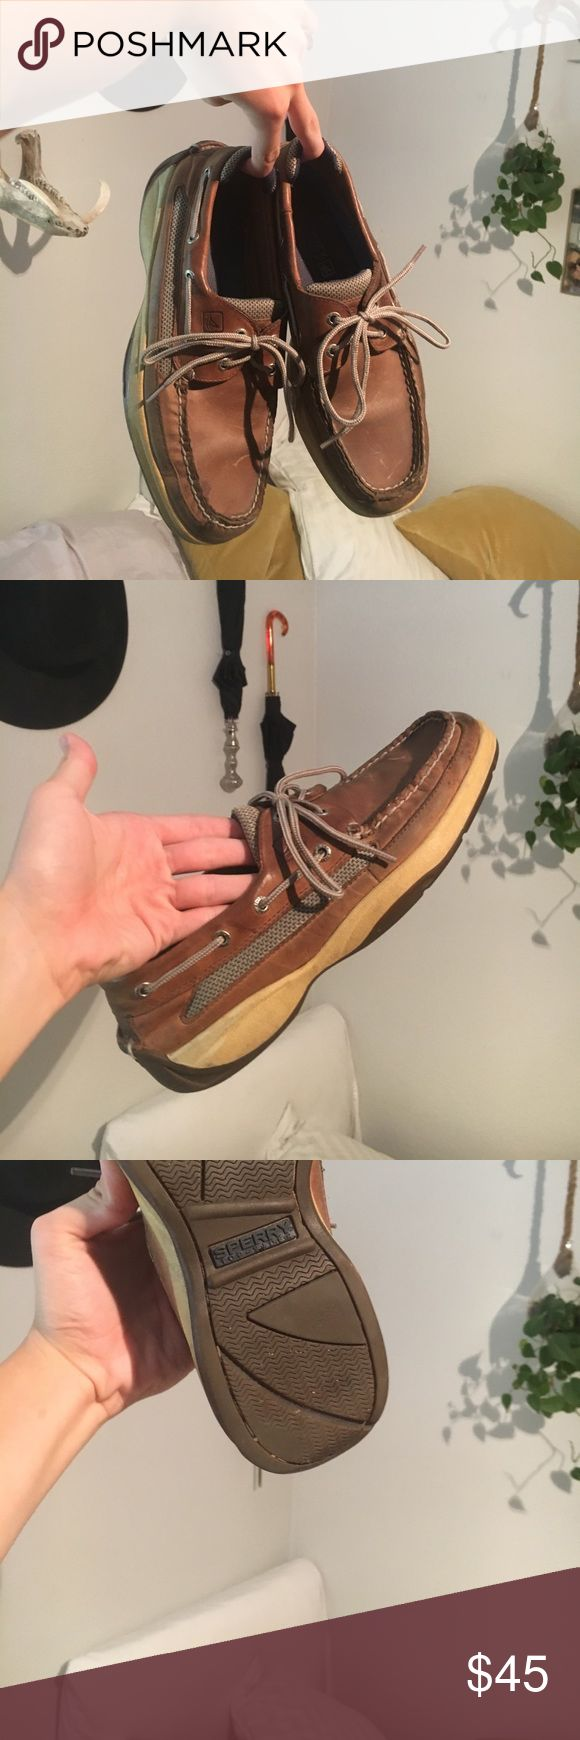 Men's Sperry Top-Siders These sperry's are my personal favorite and are hard to let go, in GREAT condition, worn only a handful of times, color is a darker brown leather. Sperry Top-Sider Shoes Loafers & Slip-Ons